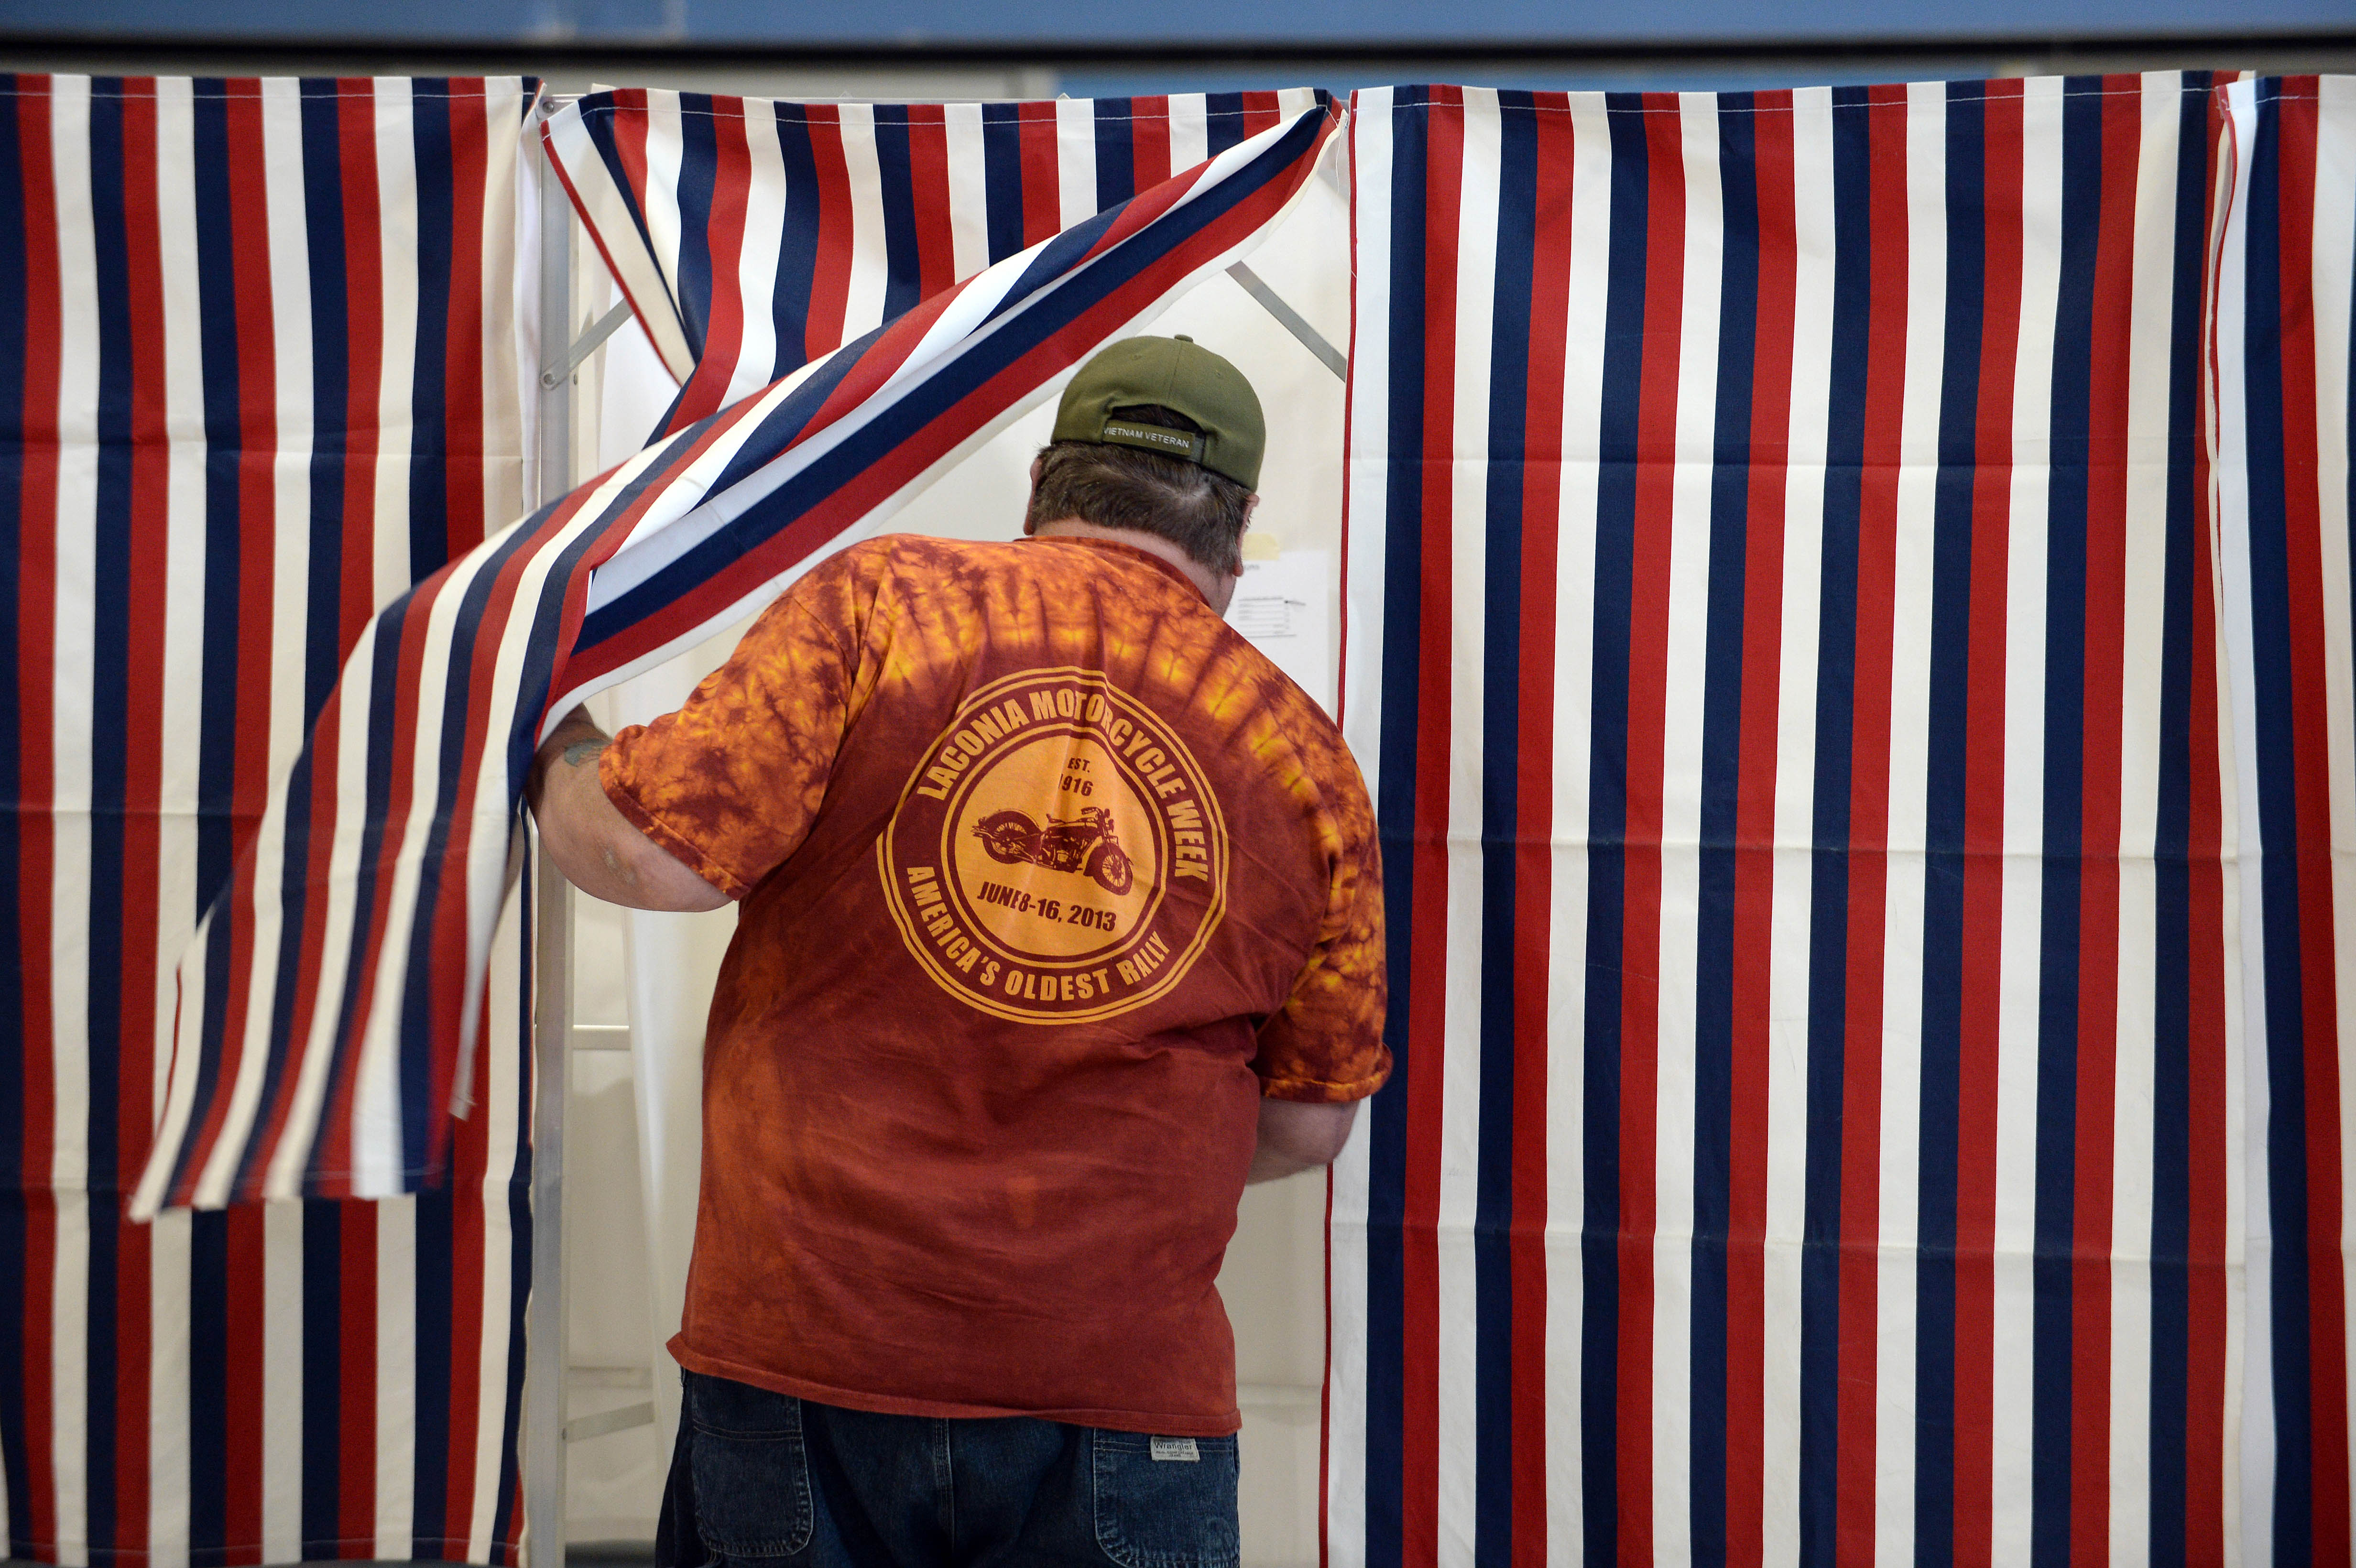 A voter enters the voting booth at Bishop Leo E. O'Neil Youth Center in Manchester, New Hampshire, Nov. 4, 2014.